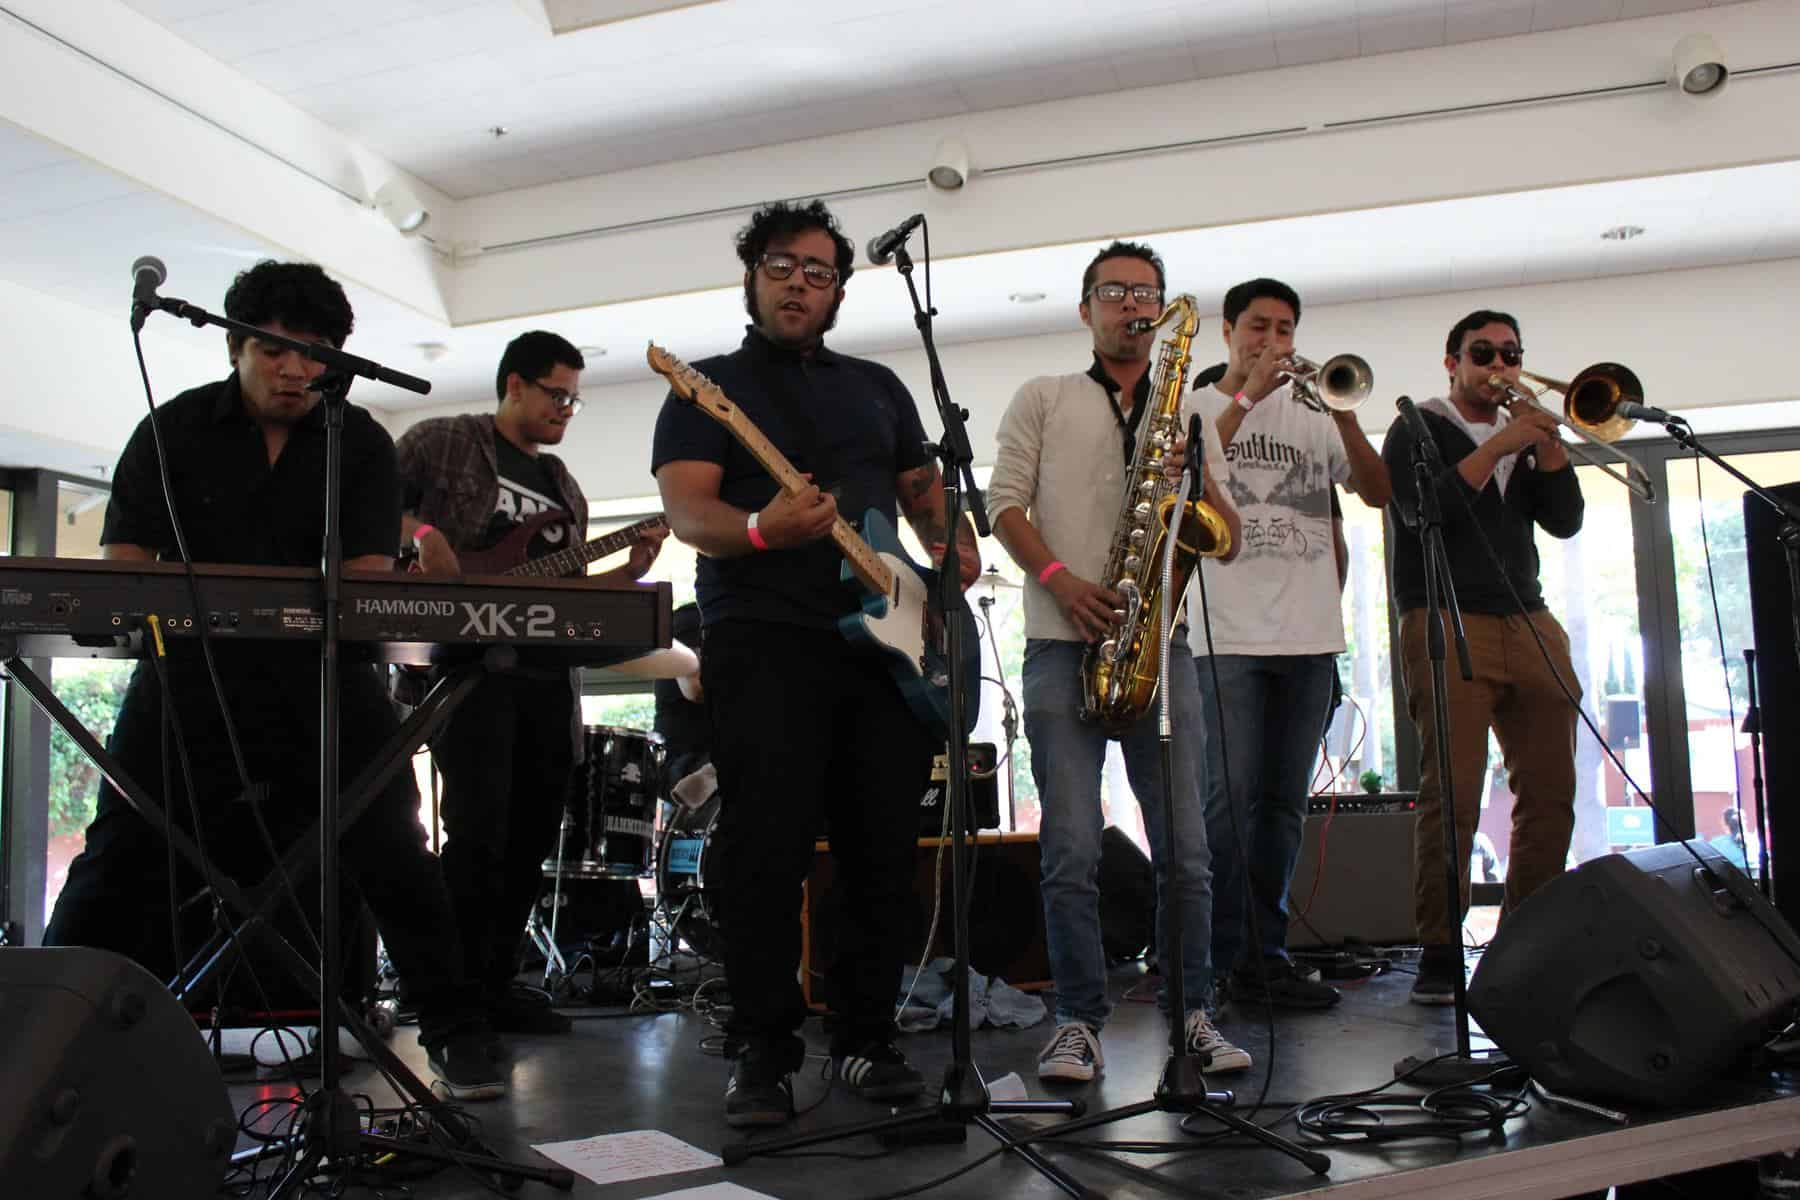 Six Member Band With Horns Performing